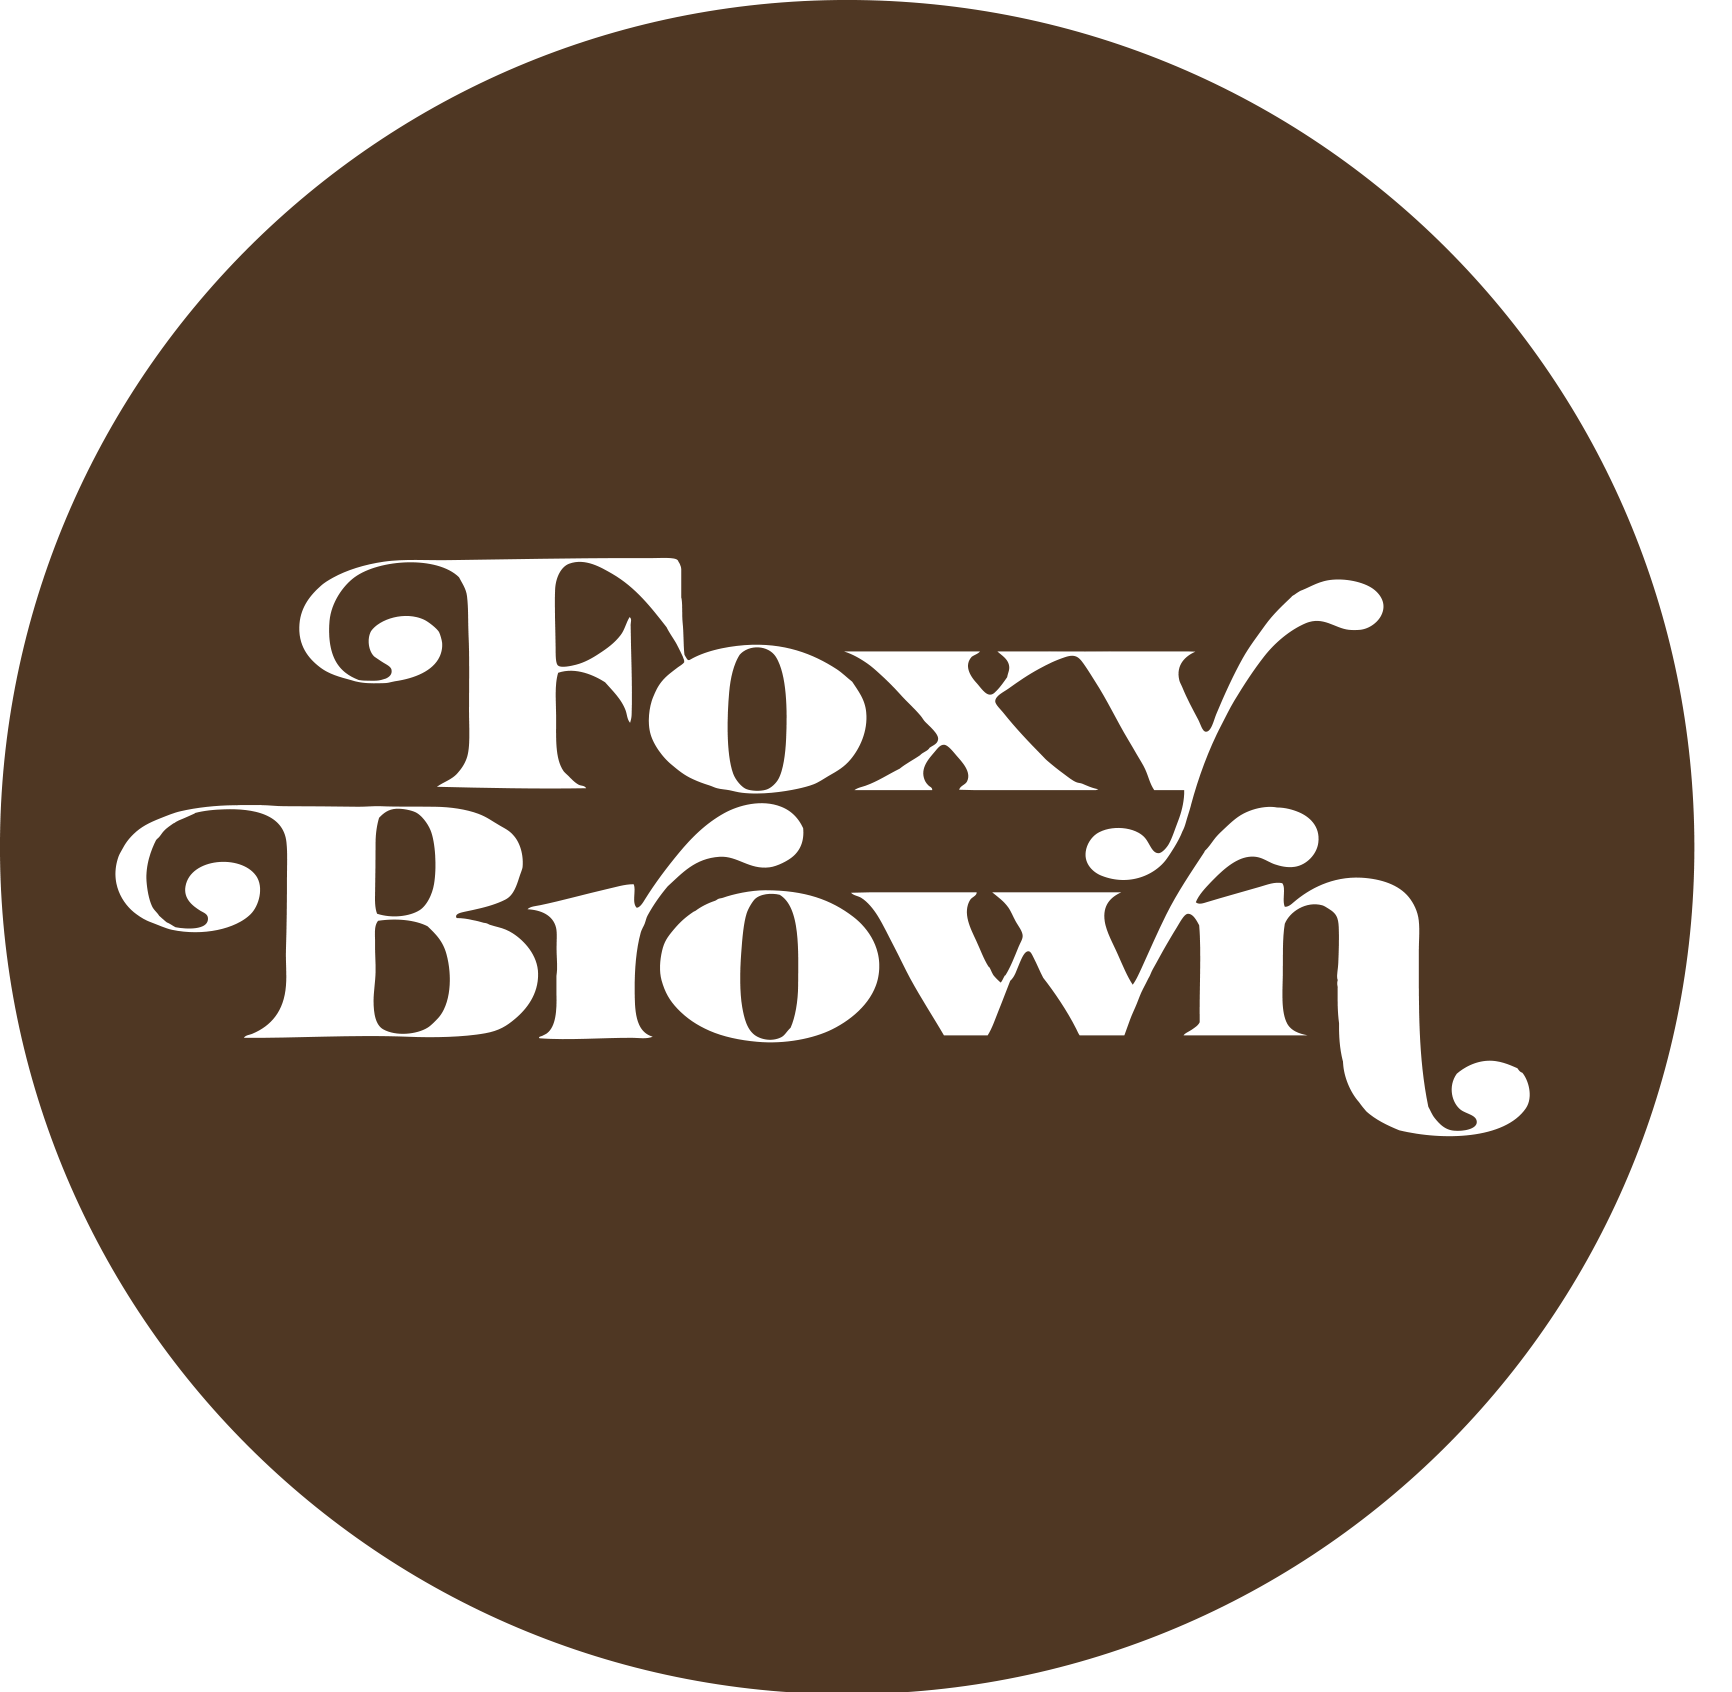 foxy-brown-vintage-logo